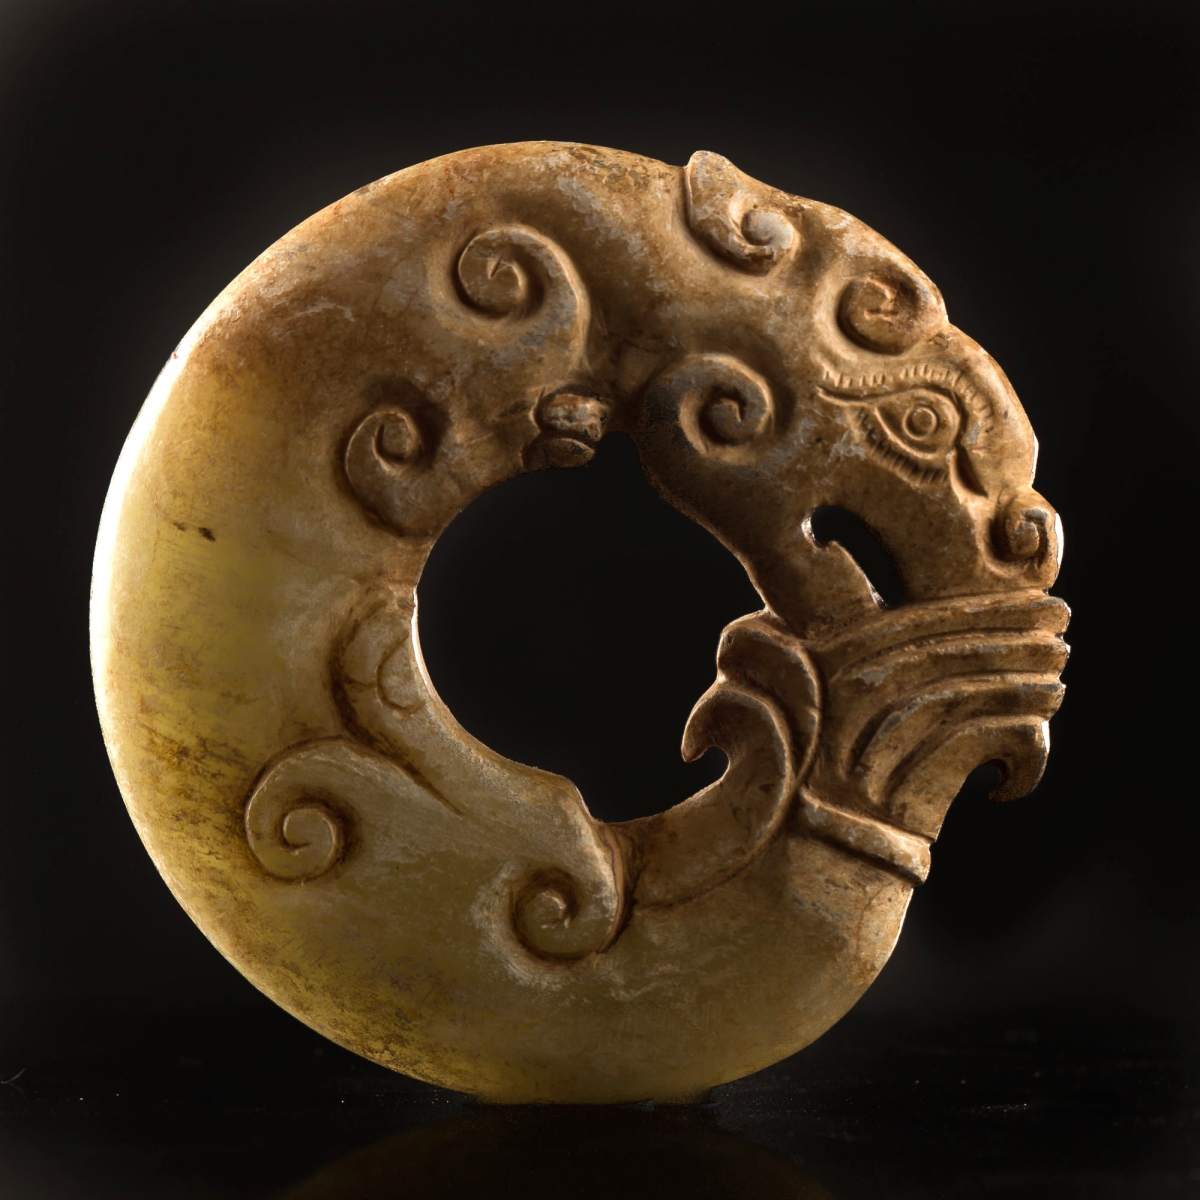 Photo of archaic-jade-china-neolithic-specialist-galerie-golconda-with-certificate-musuem-quality